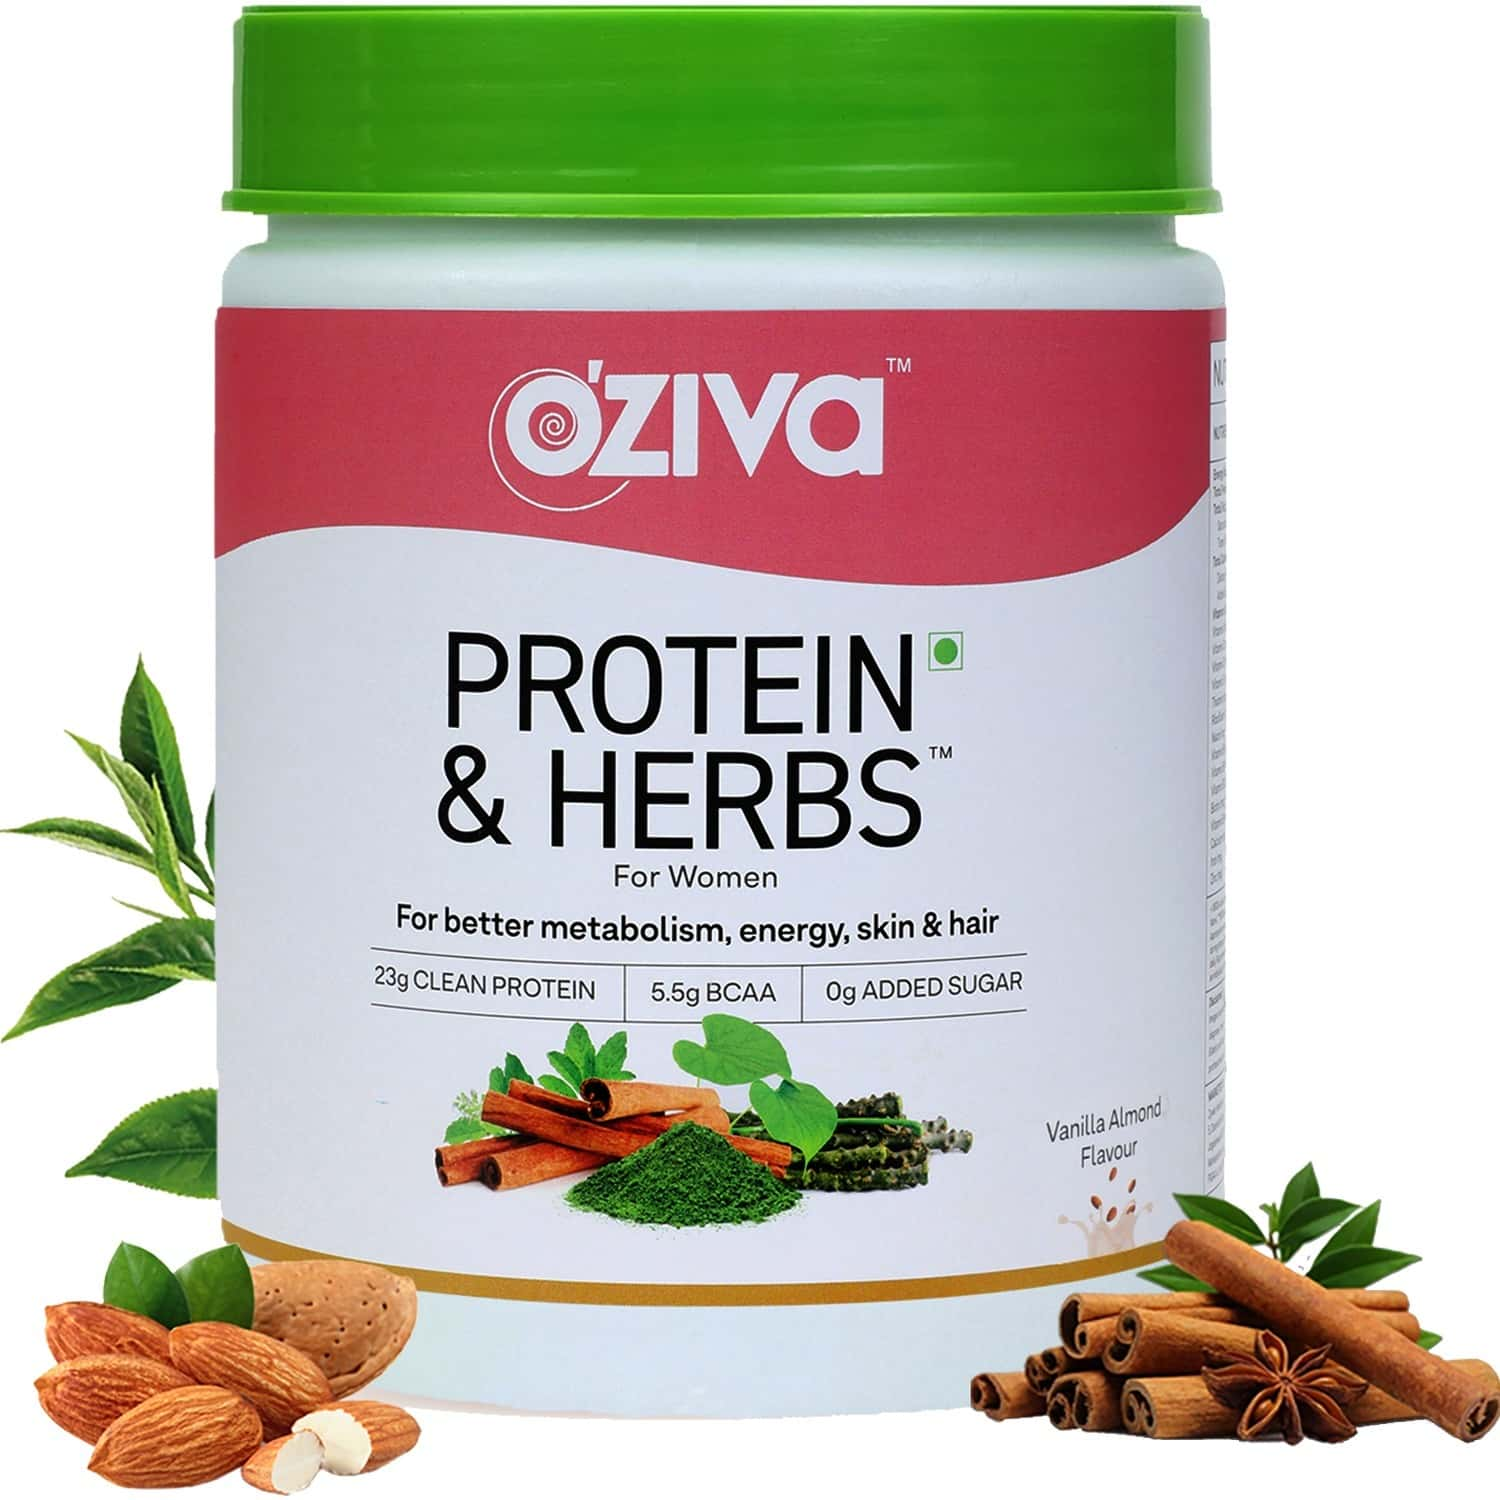 Oziva Protein & Herbs For Women - Natural Protein With Whey, Ayurvedic Herbs & Multivitamins For Better Metabolism, Skin & Hair- 500 Gm , Vanilla Almond